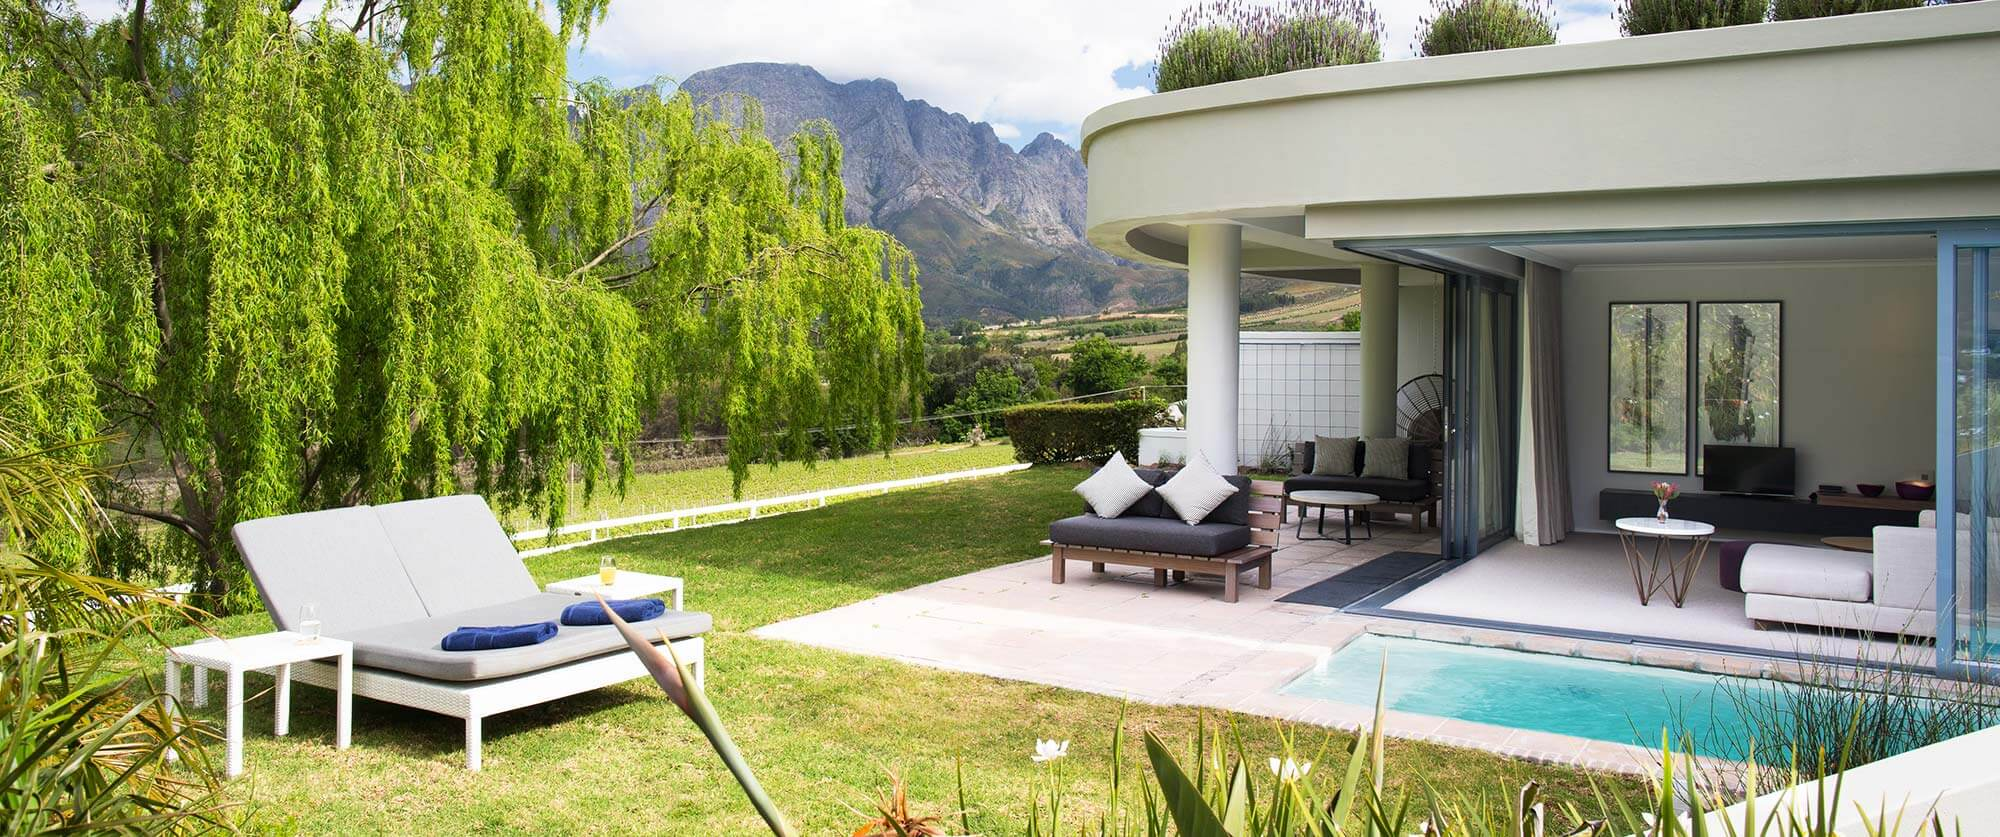 Mont Rochelle - Cape Winelands Vacation - South Africa and Victoria Falls Package: Ultimate Luxury Adventure